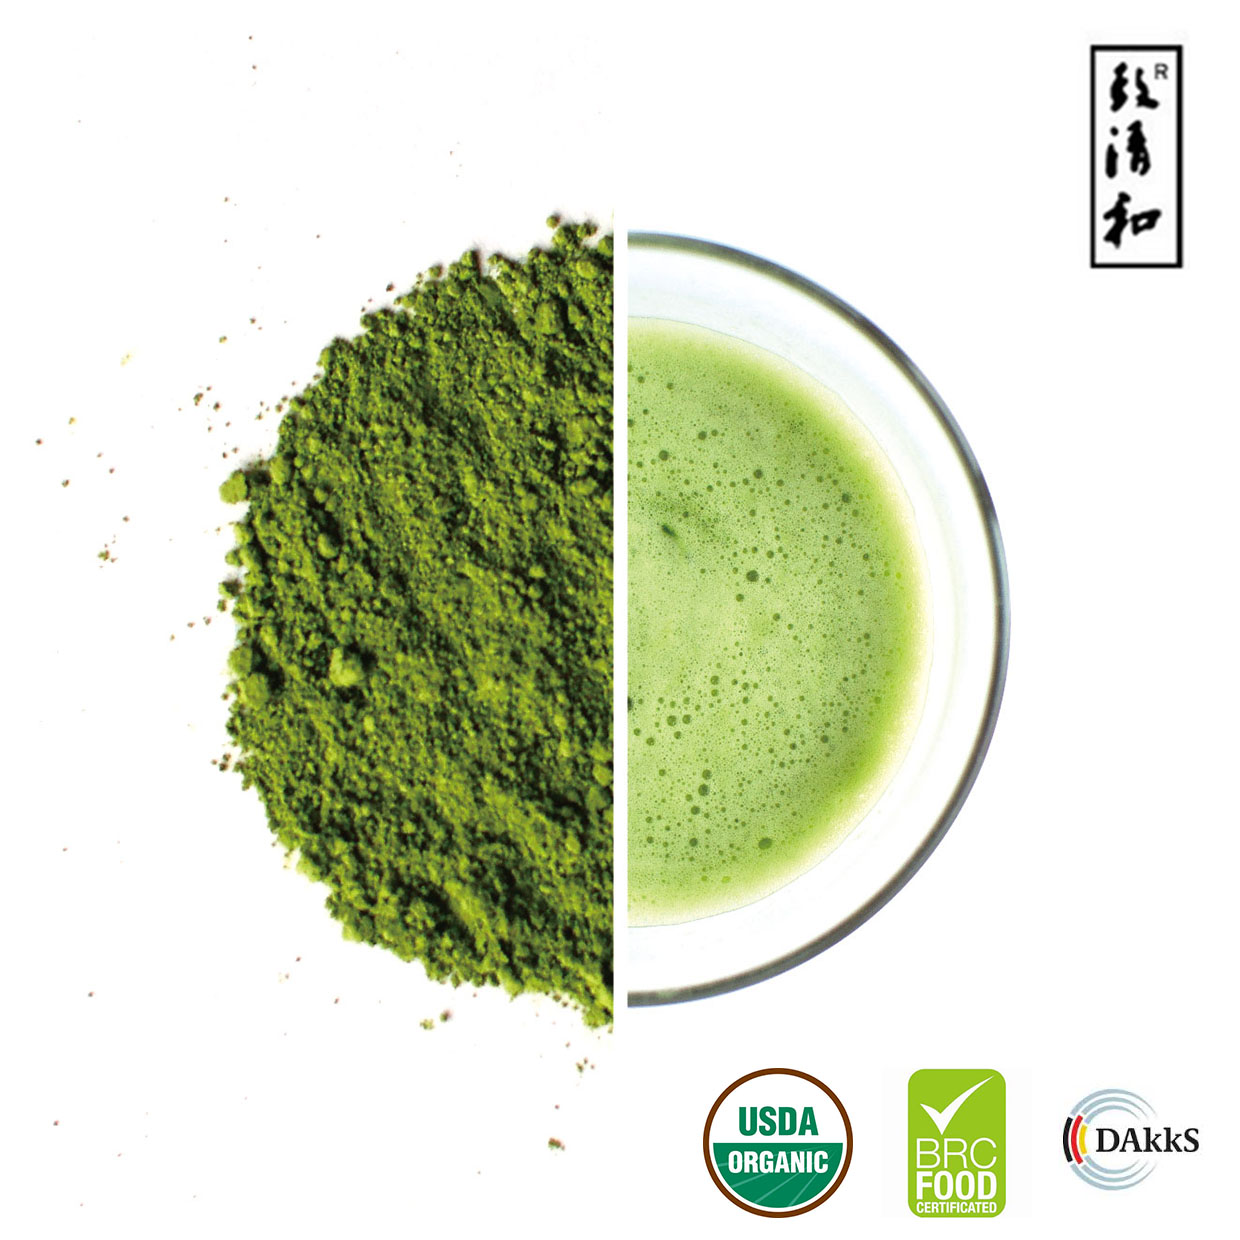 USDA Organic Matcha Tea Powder